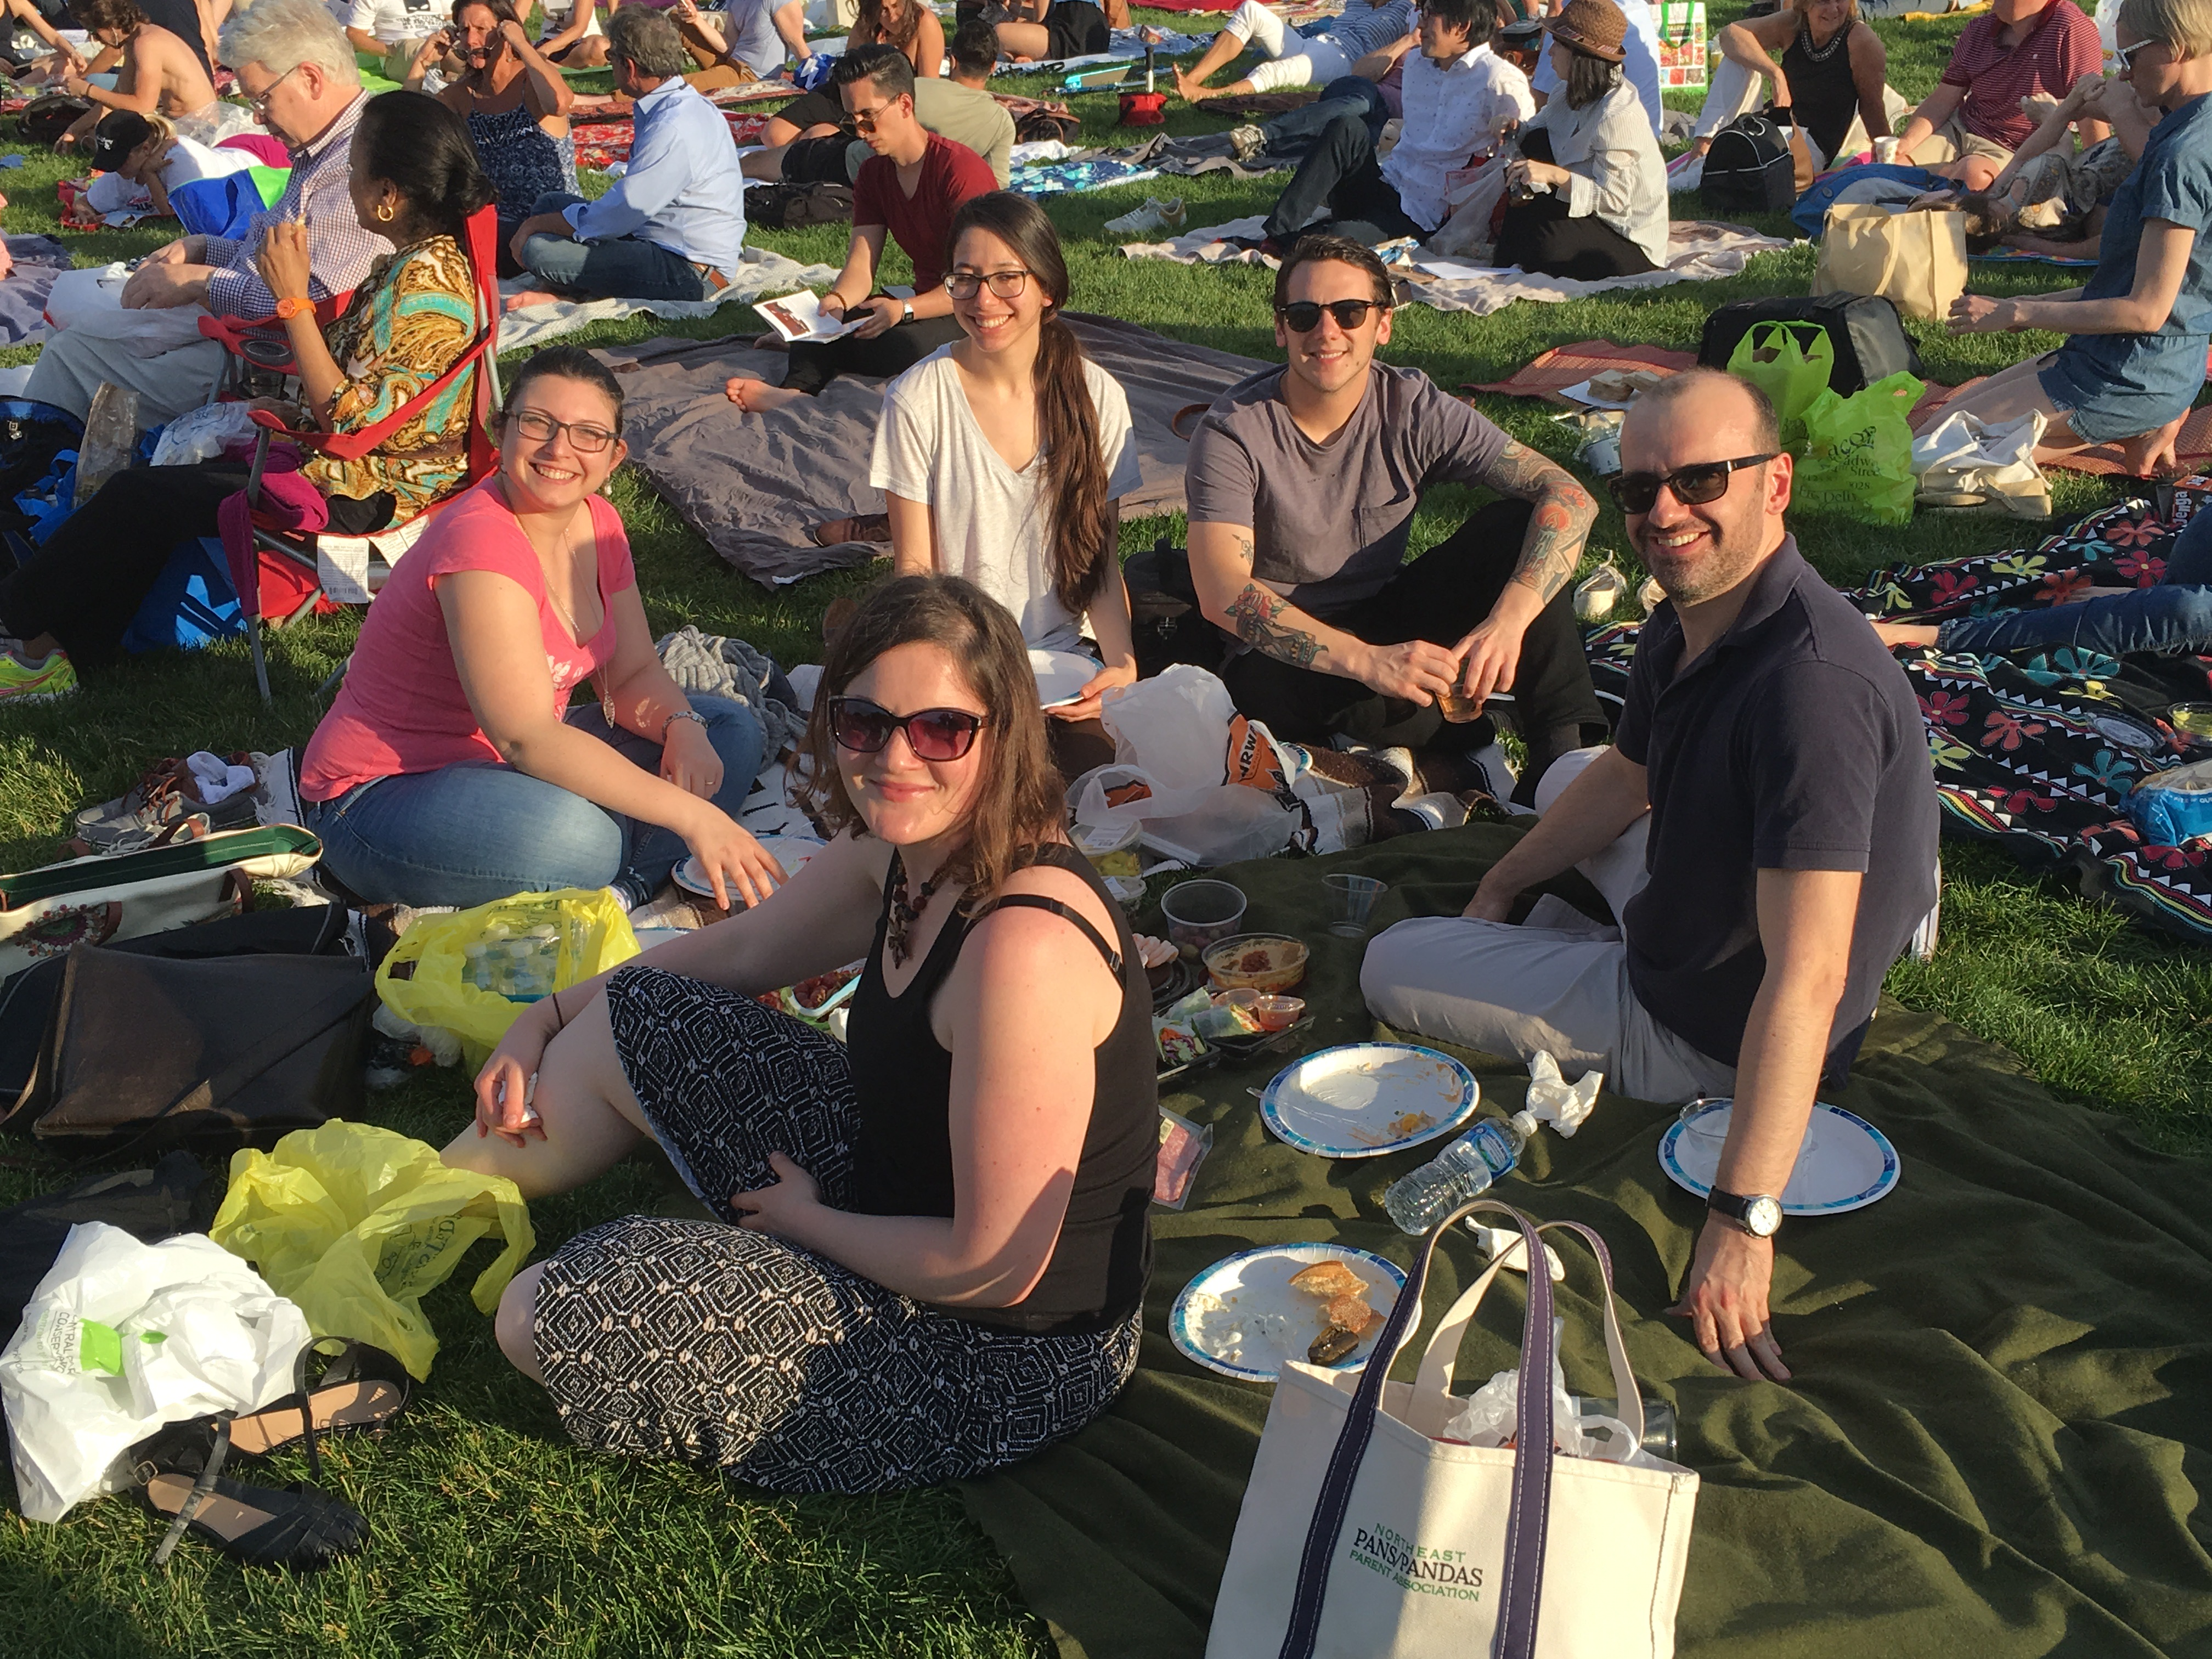 NY Philharmonic Concert in the Park, Central Park, June 2016